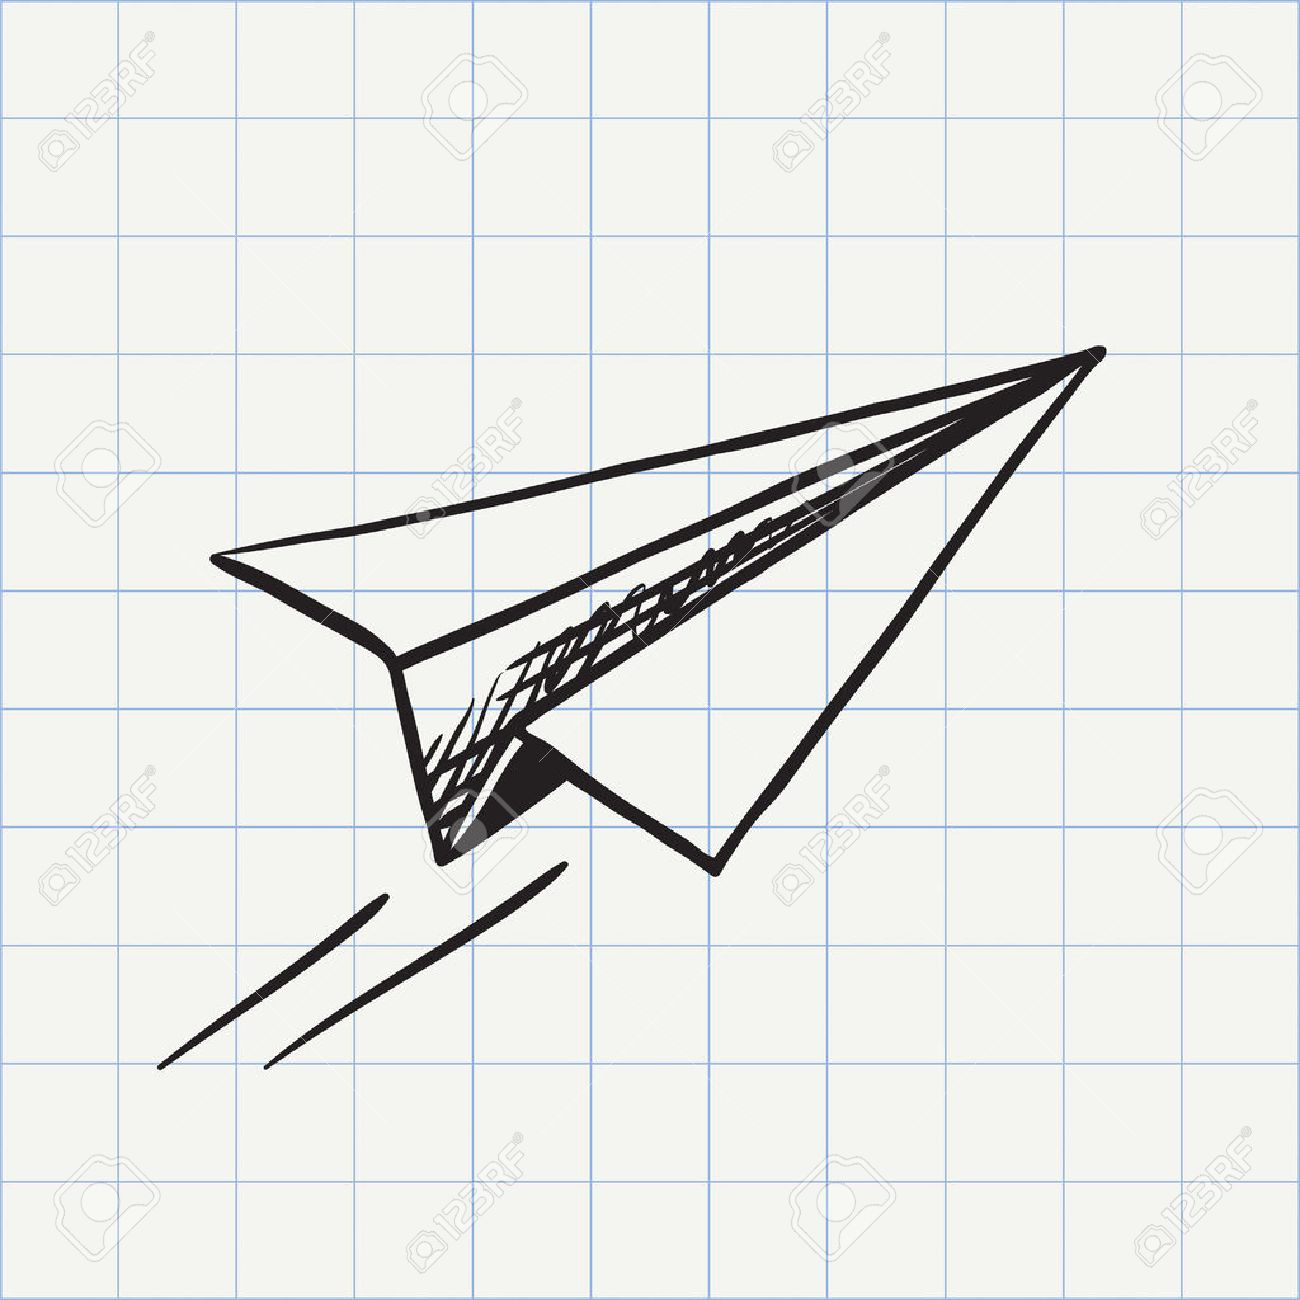 24111 paper airplane stock vector illustration and royalty free paper plane doodle icon hand drawn sketch in vector malvernweather Choice Image